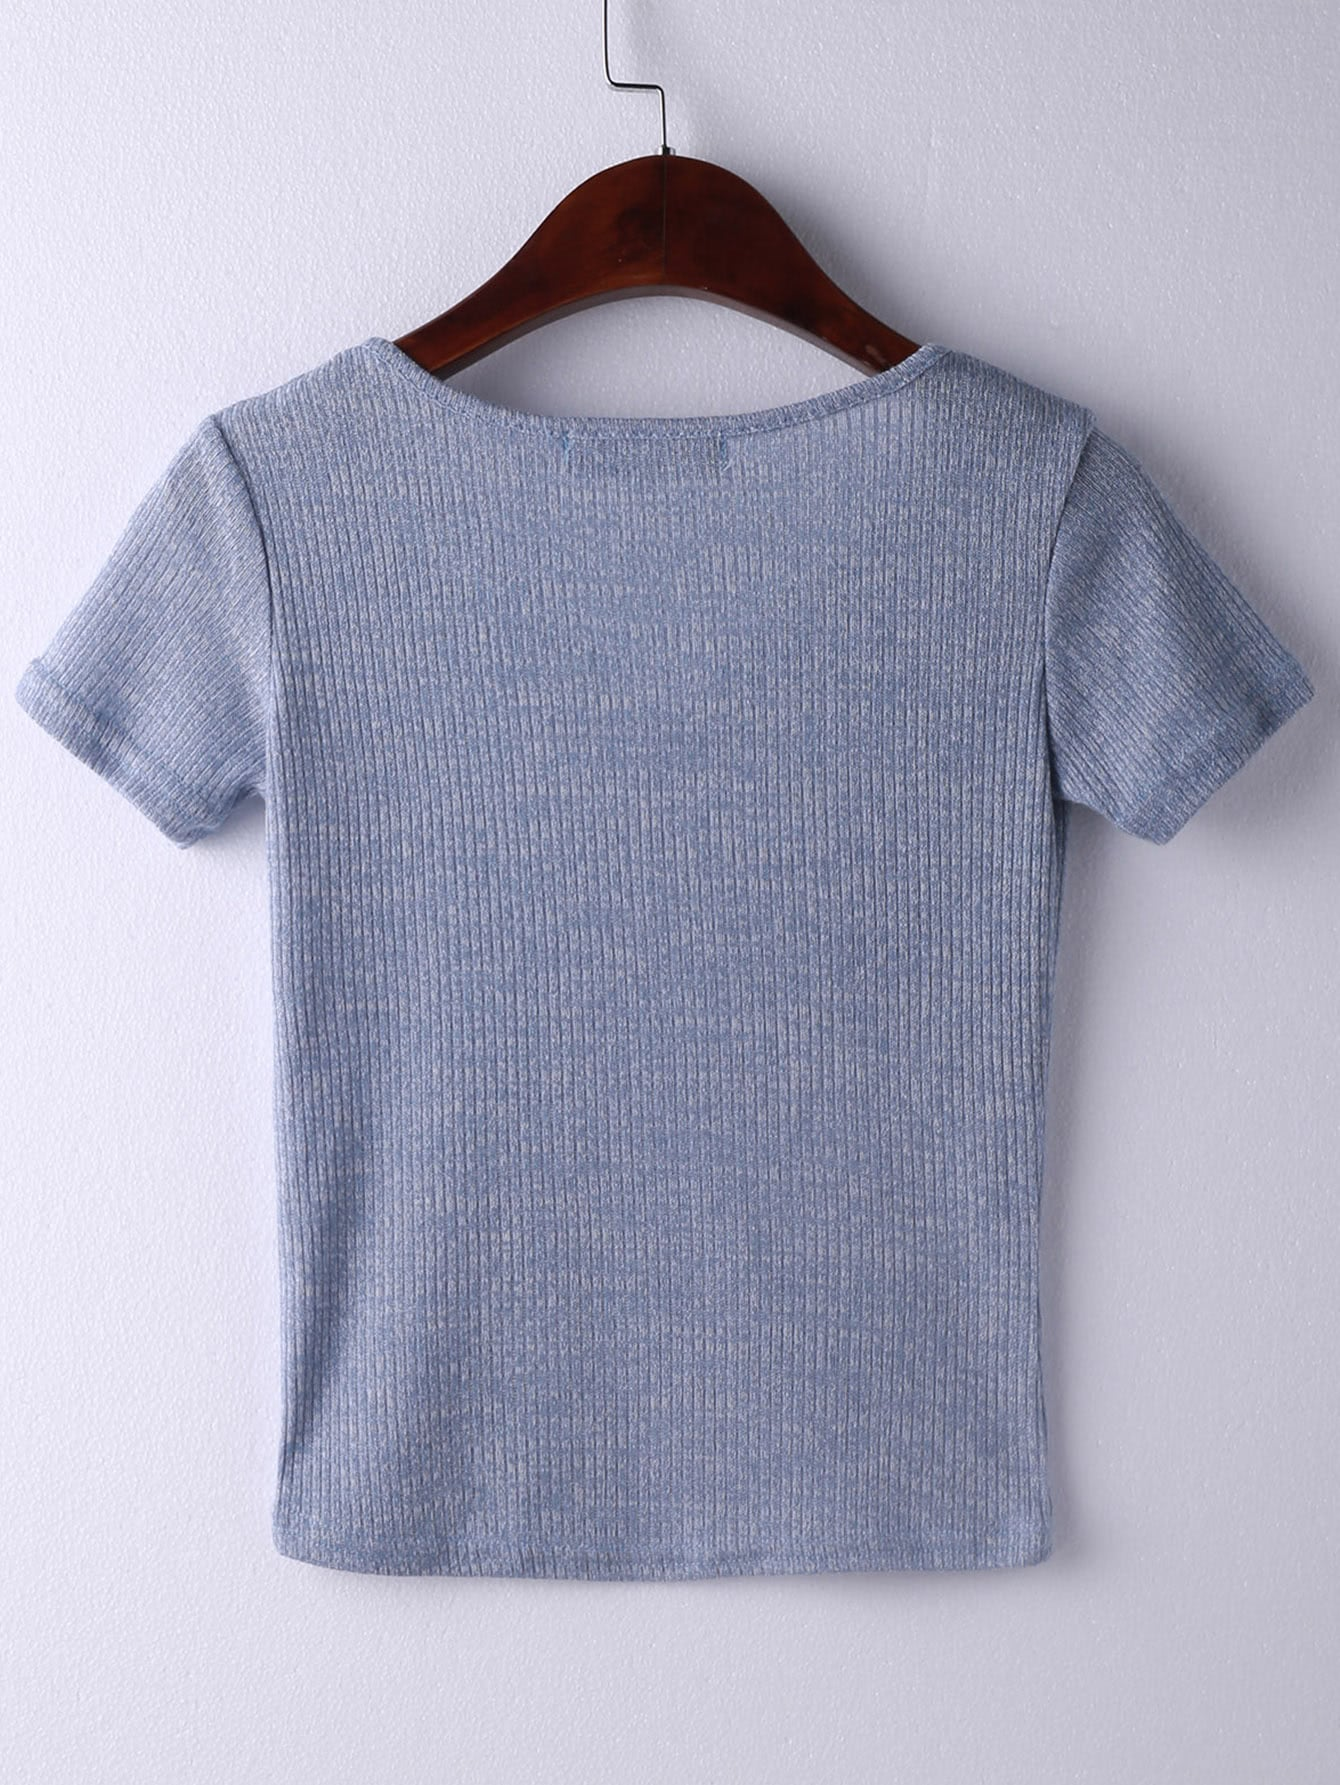 0ab0da6a1ad Cheap Light Blue Short Sleeve V Neck Ribbed T-shirt for sale Australia